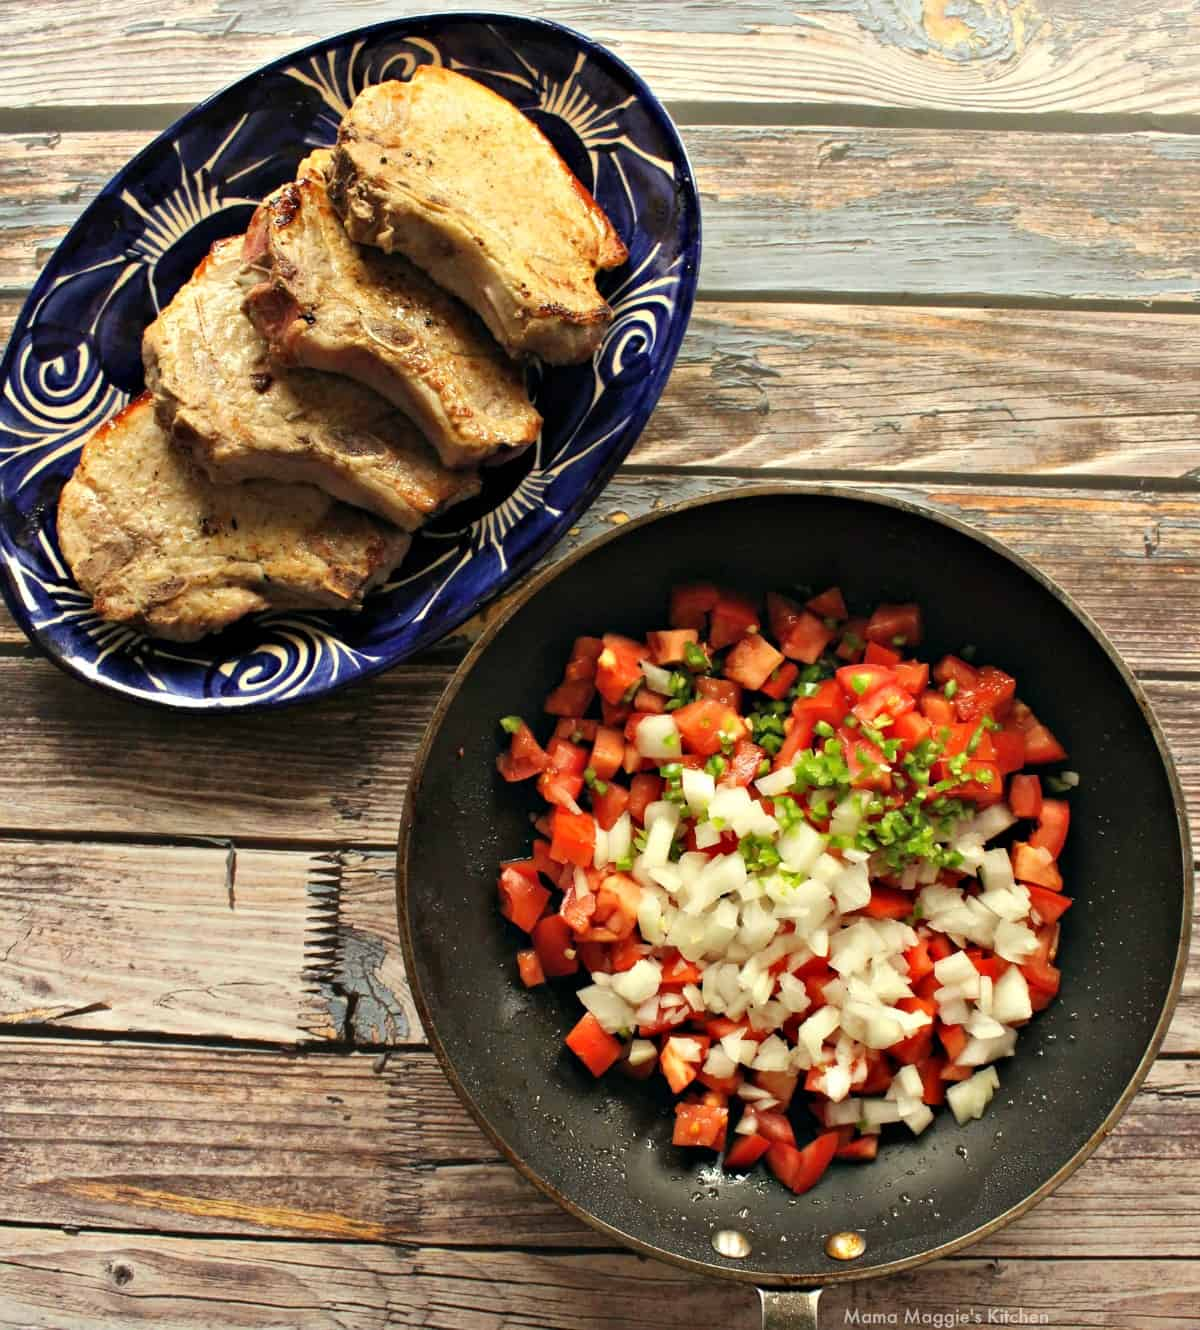 Seared pork chops on a blue plate next to a skillet with a tomato mixture.